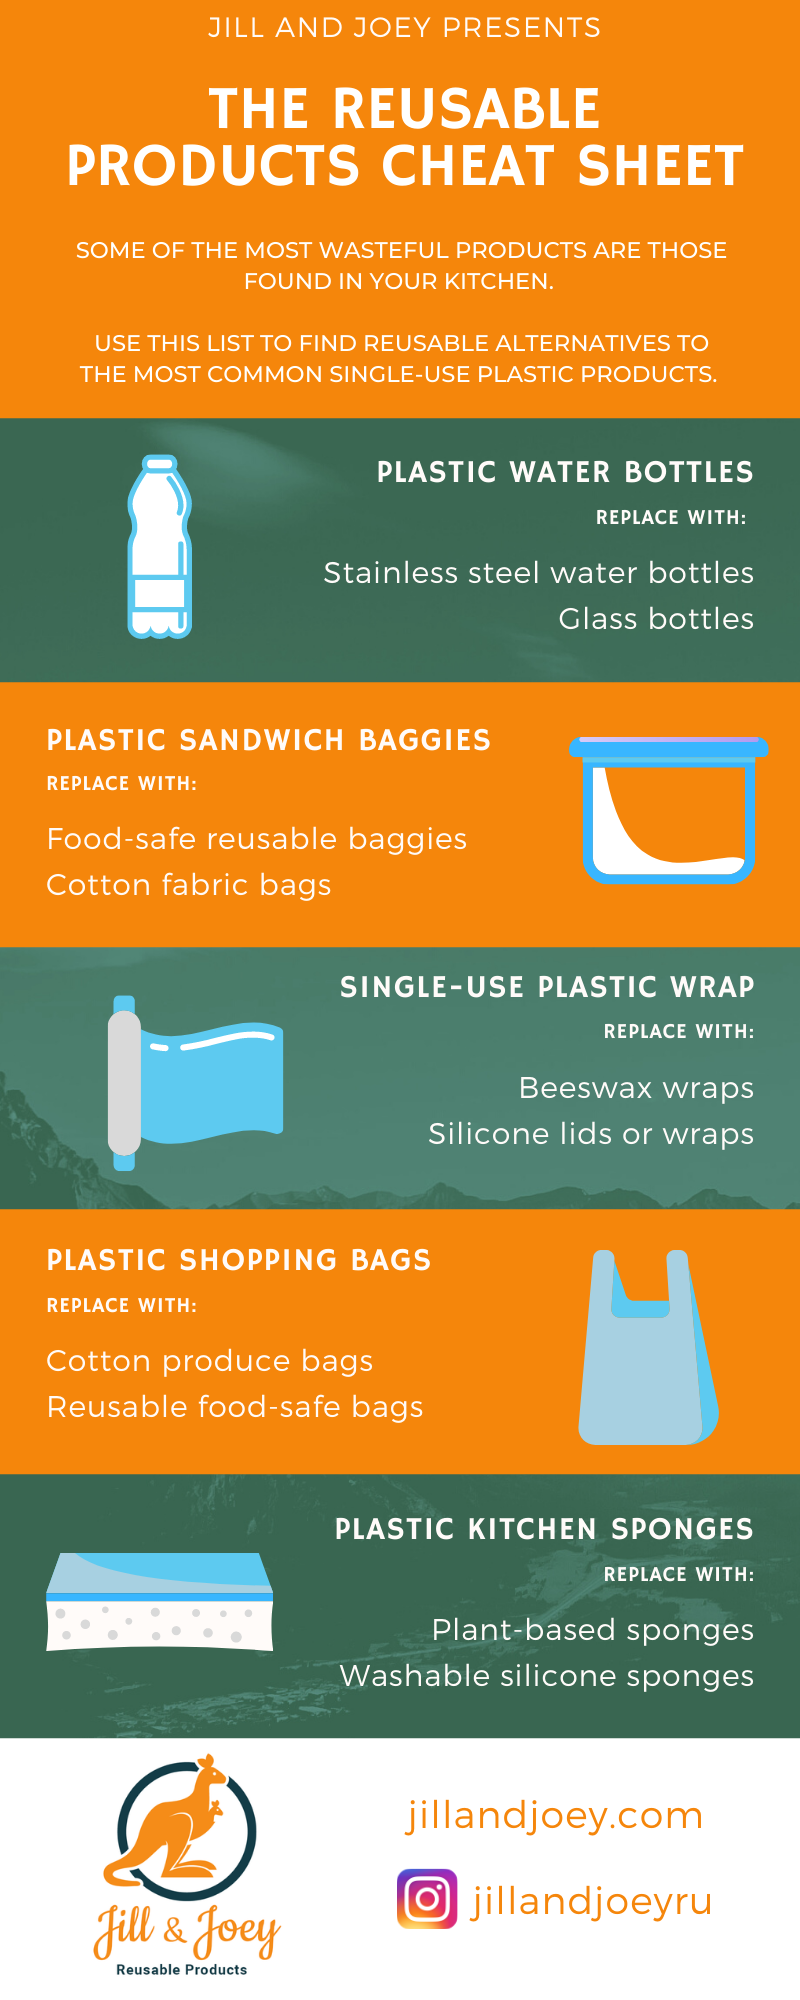 Reusable Products Cheat Sheet